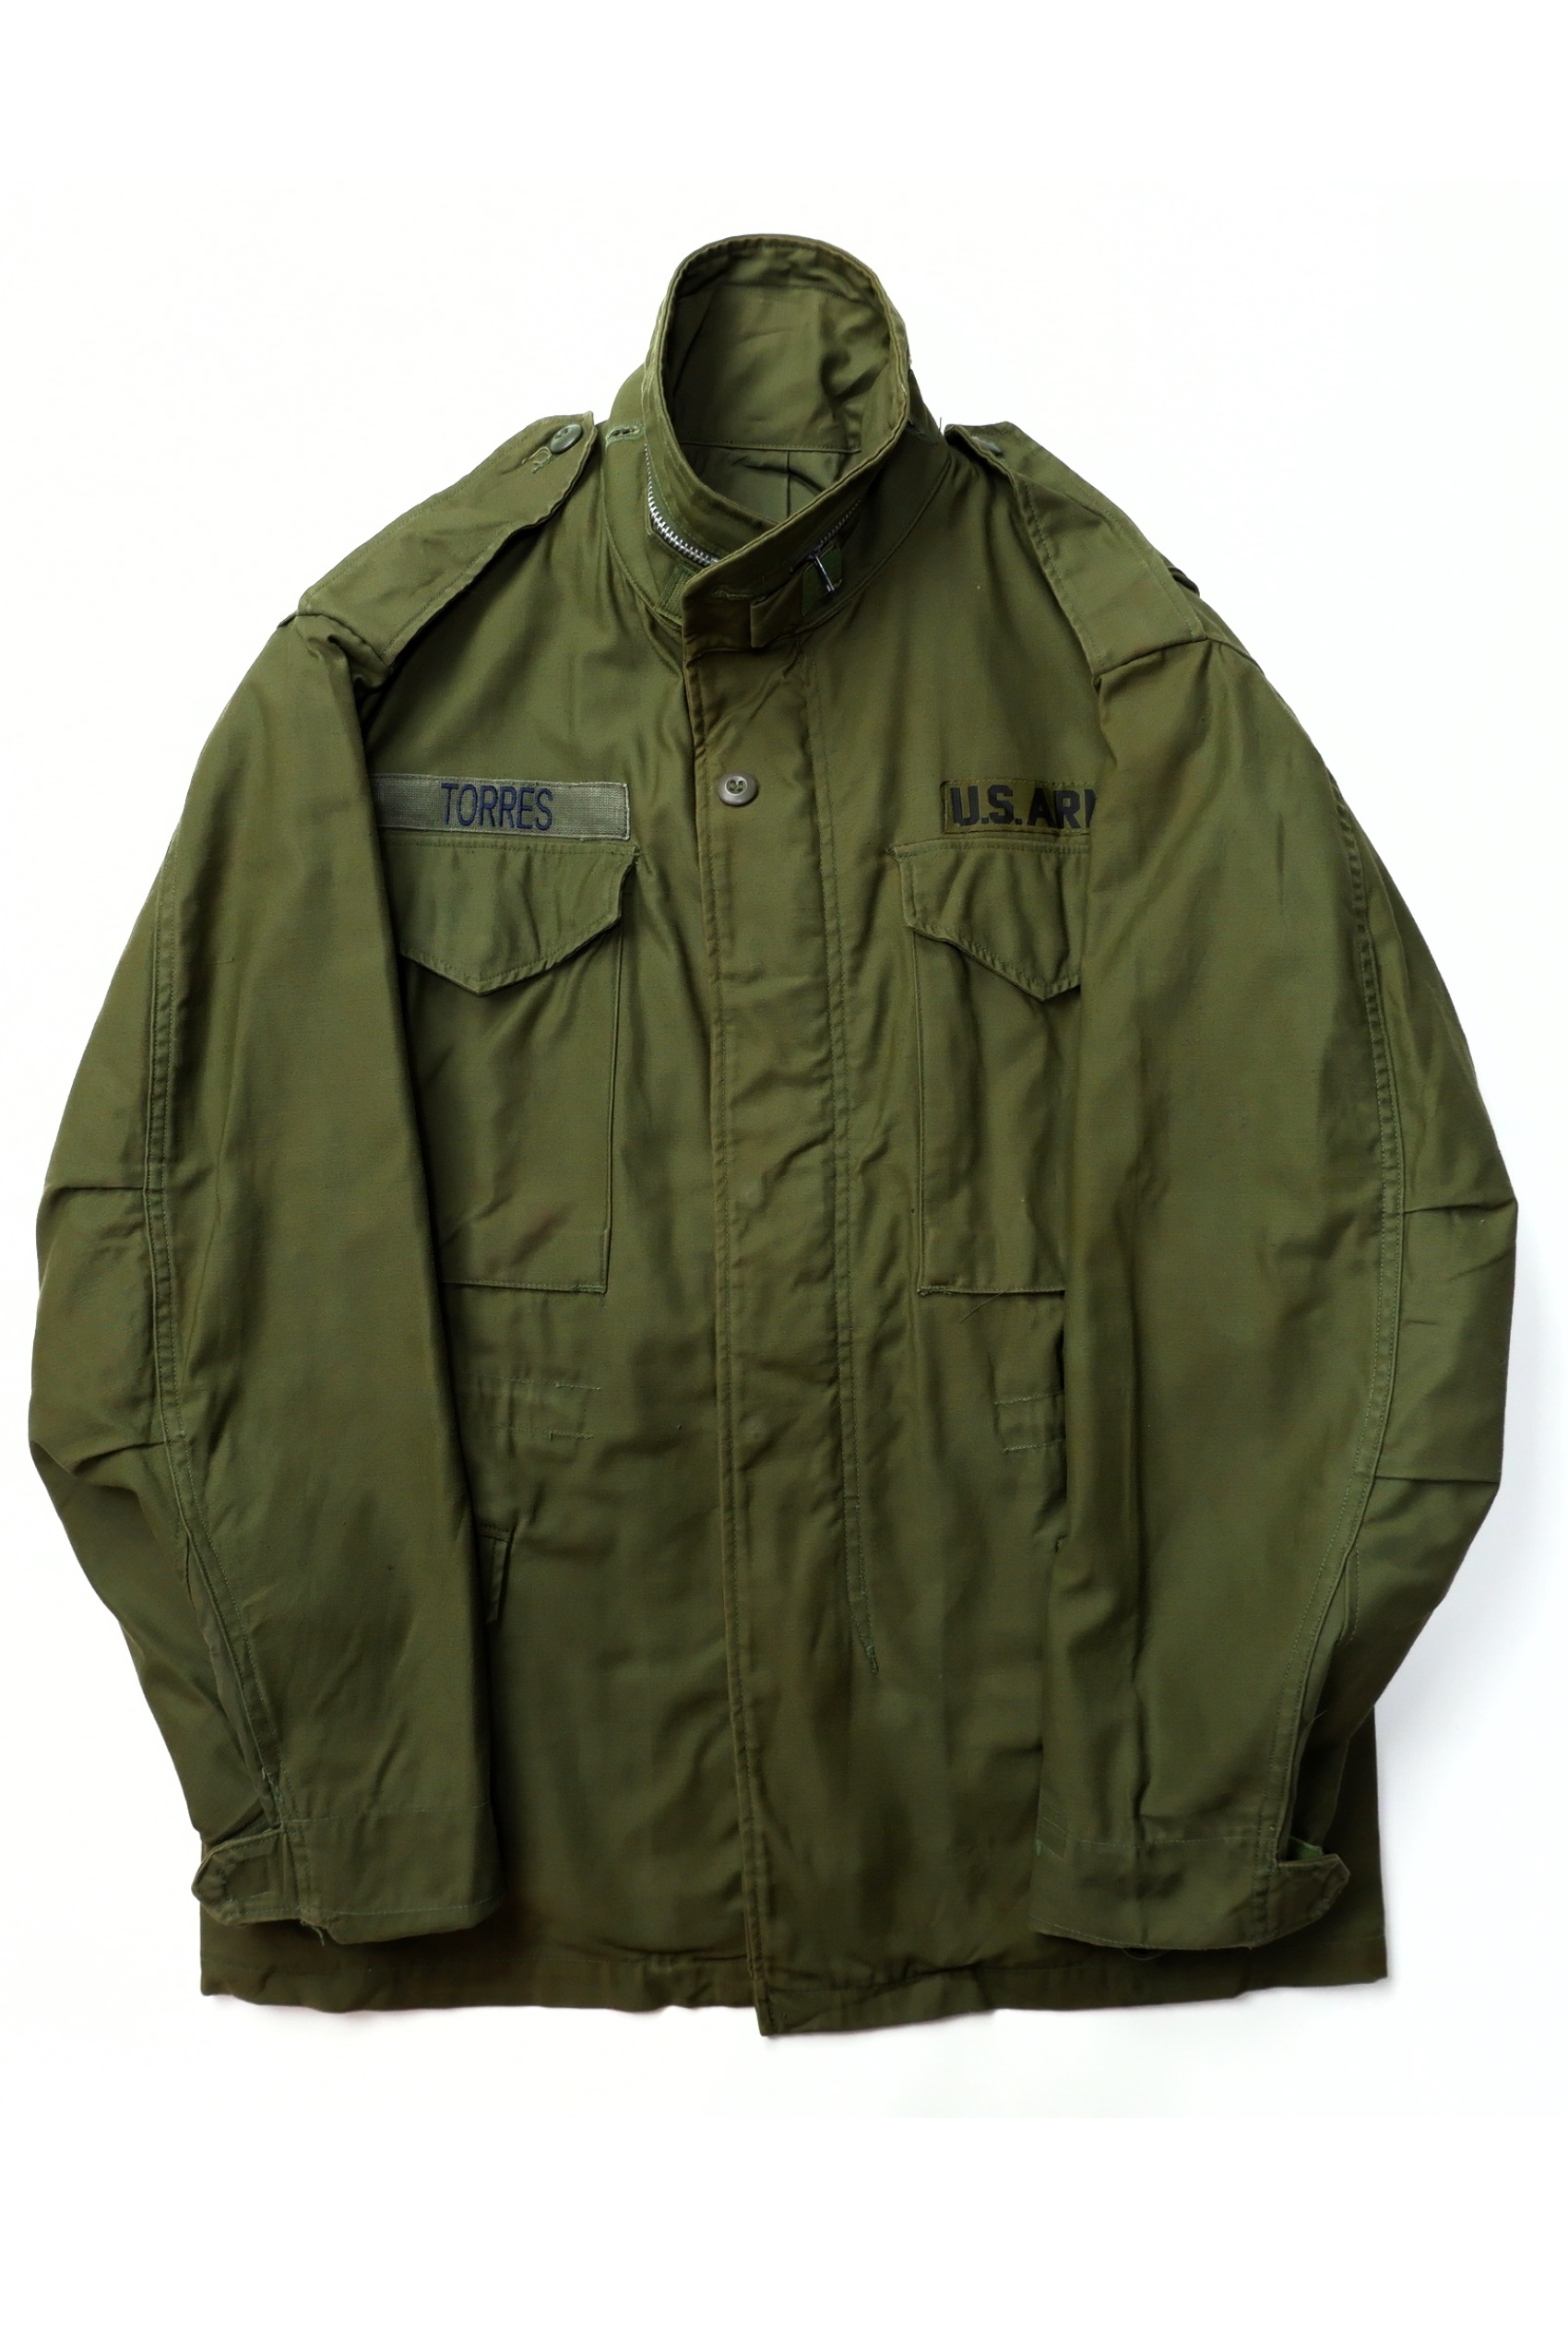 M-65 FIELD JACKET 2nd